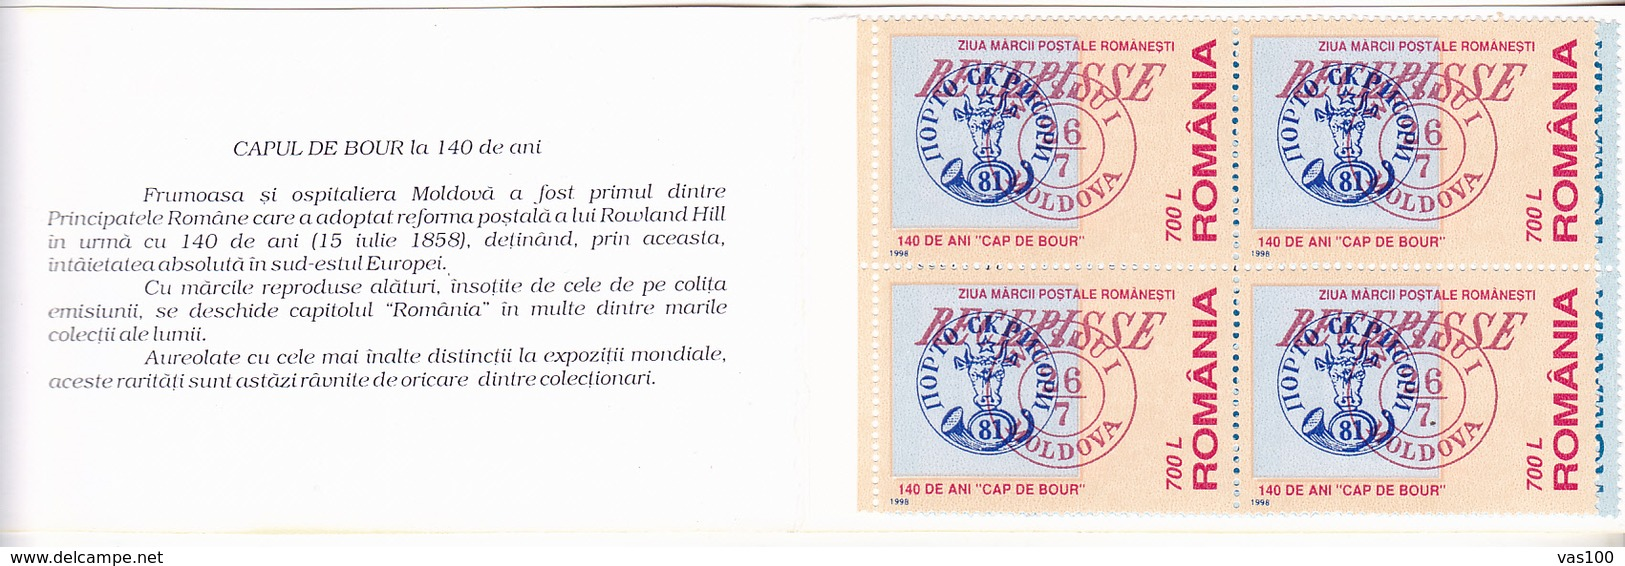 THE BULL - HEAD 140 YEARS,BOOKLETS 1998,ROMANIA. - Carnets